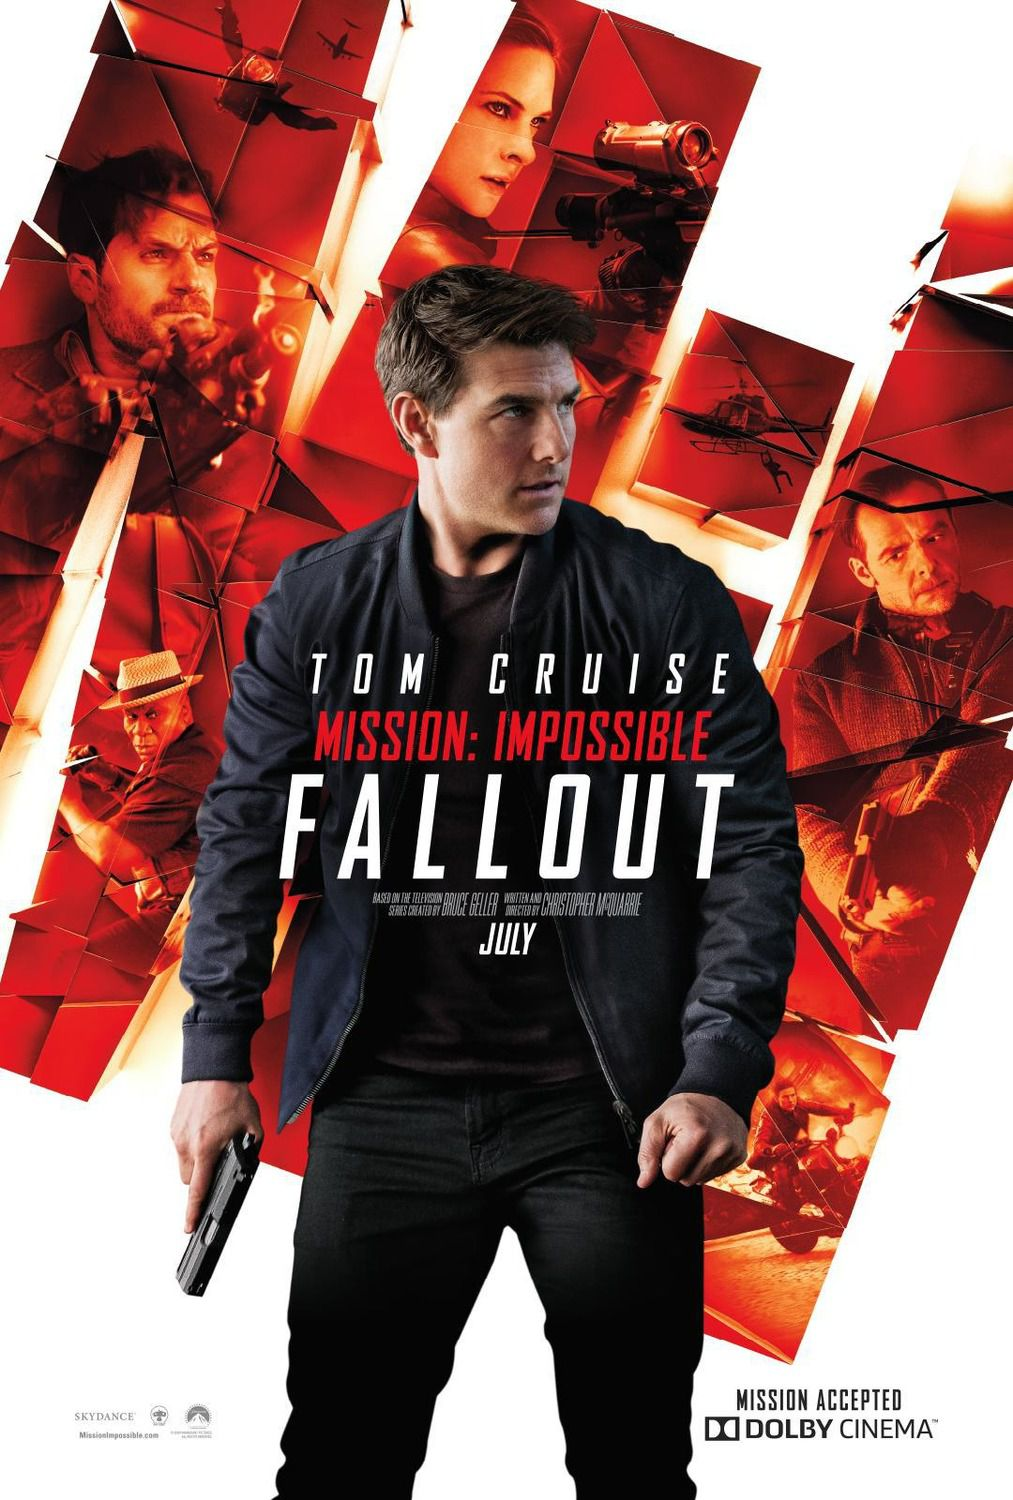 Mission Impossible 6 - Fallout (2018) - Tom Cruise